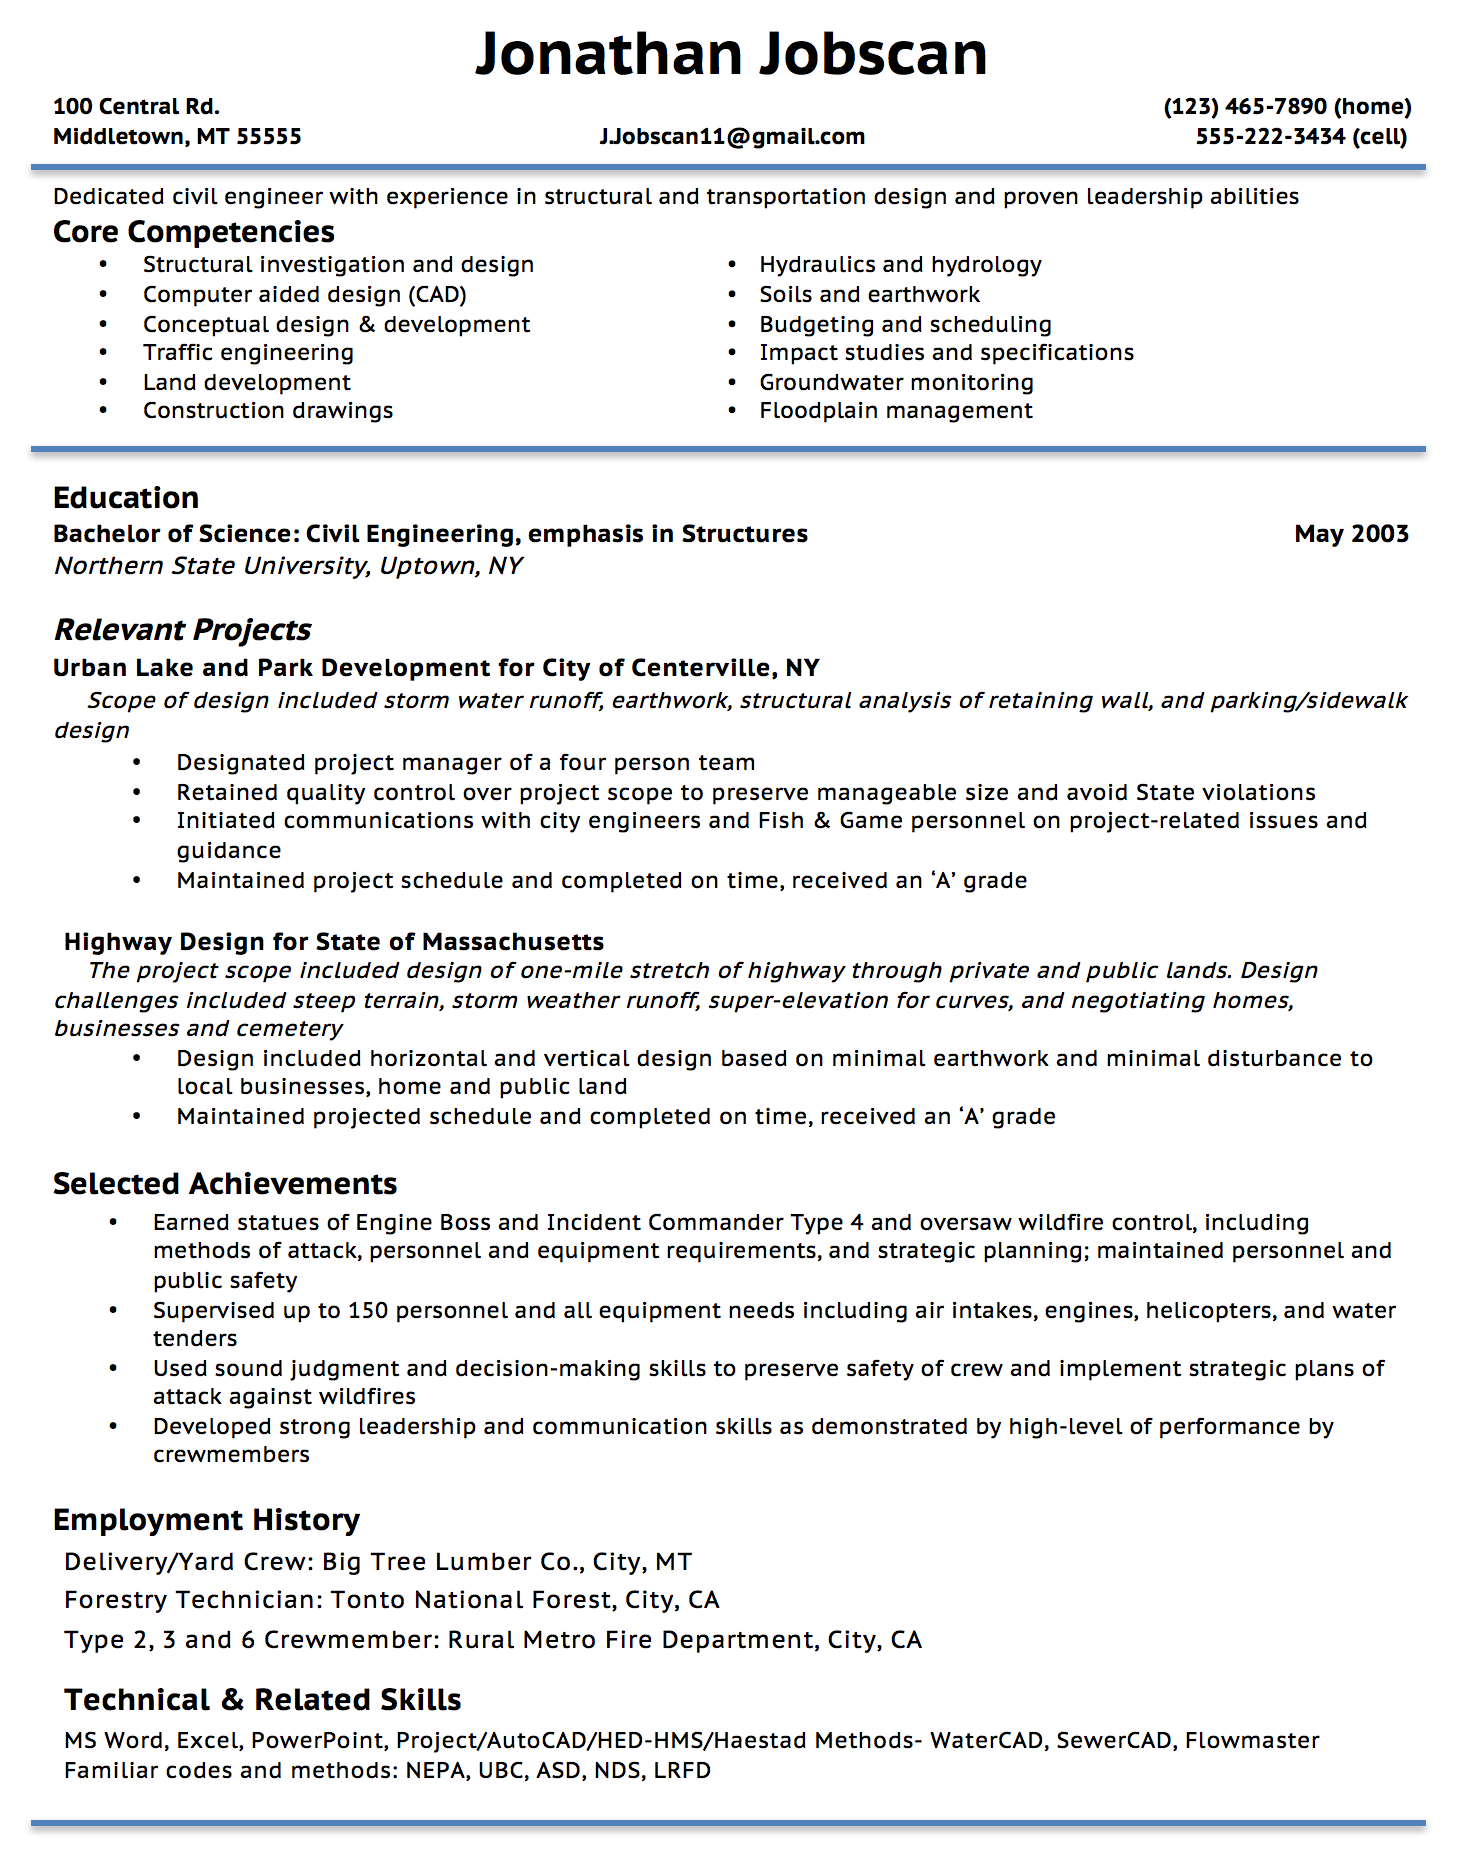 Picnictoimpeachus  Seductive Resume Writing Guide  Jobscan With Exquisite Example Of A Functional Resume Format With Enchanting Resume Photographer Also Dock Worker Resume In Addition What Is A Cover Letter In A Resume And Free Resume Cover Letters As Well As Thank You For Forwarding My Resume Additionally How To List A Reference On A Resume From Jobscanco With Picnictoimpeachus  Exquisite Resume Writing Guide  Jobscan With Enchanting Example Of A Functional Resume Format And Seductive Resume Photographer Also Dock Worker Resume In Addition What Is A Cover Letter In A Resume From Jobscanco